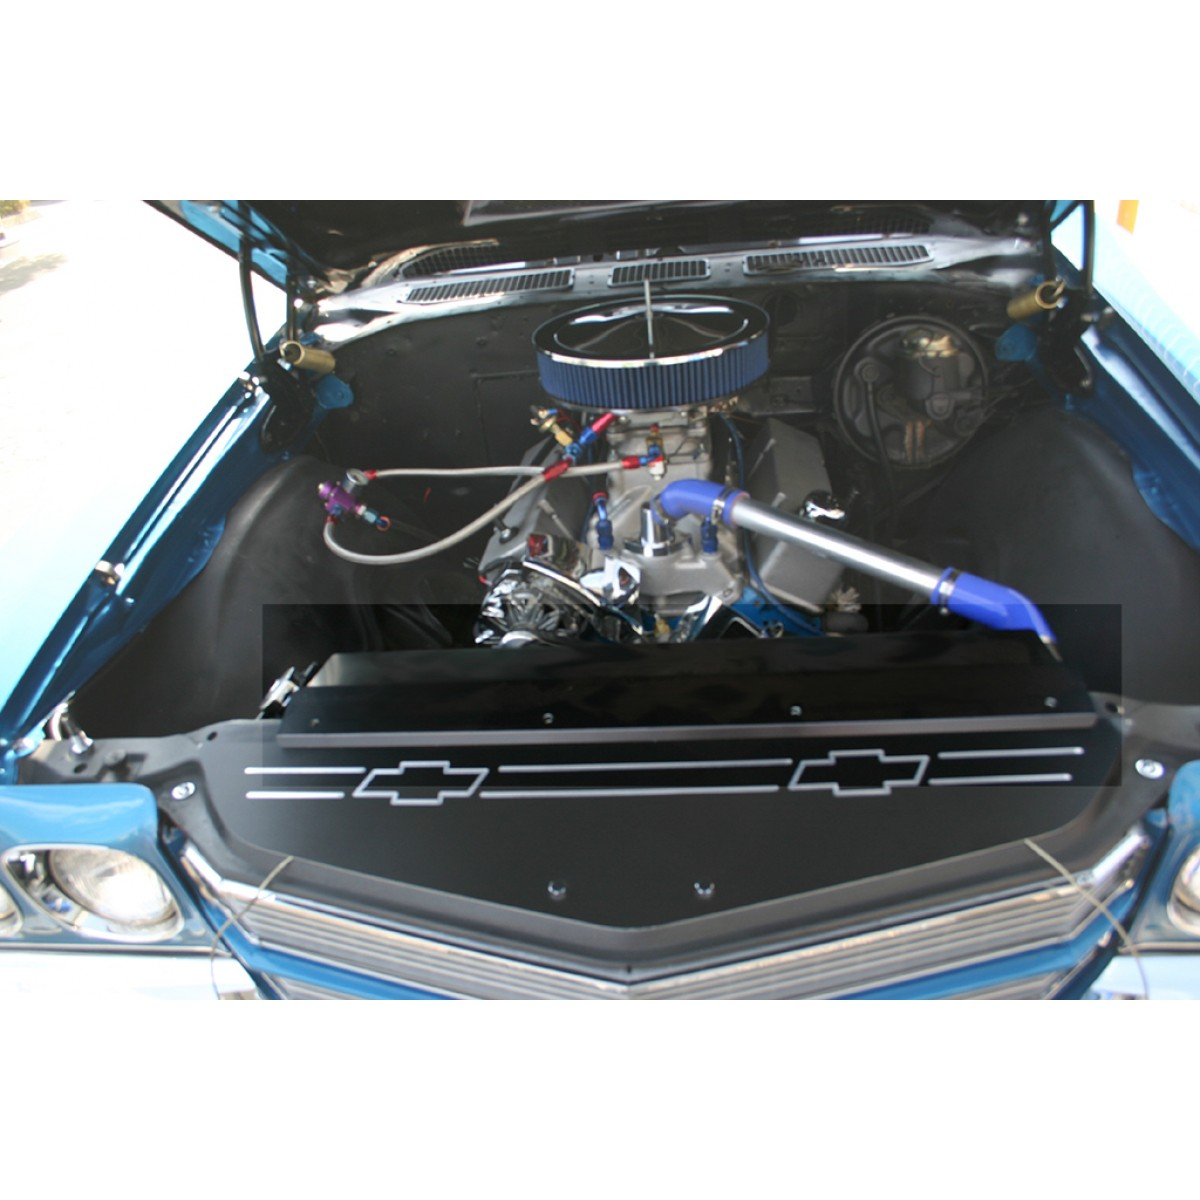 1968 1975 chevelle anodized radiator cover 3 bolt 68 72 chevelle radiator cover_1 68 chevelle radiator cover on wiring diagram for a 73 78 ford f100